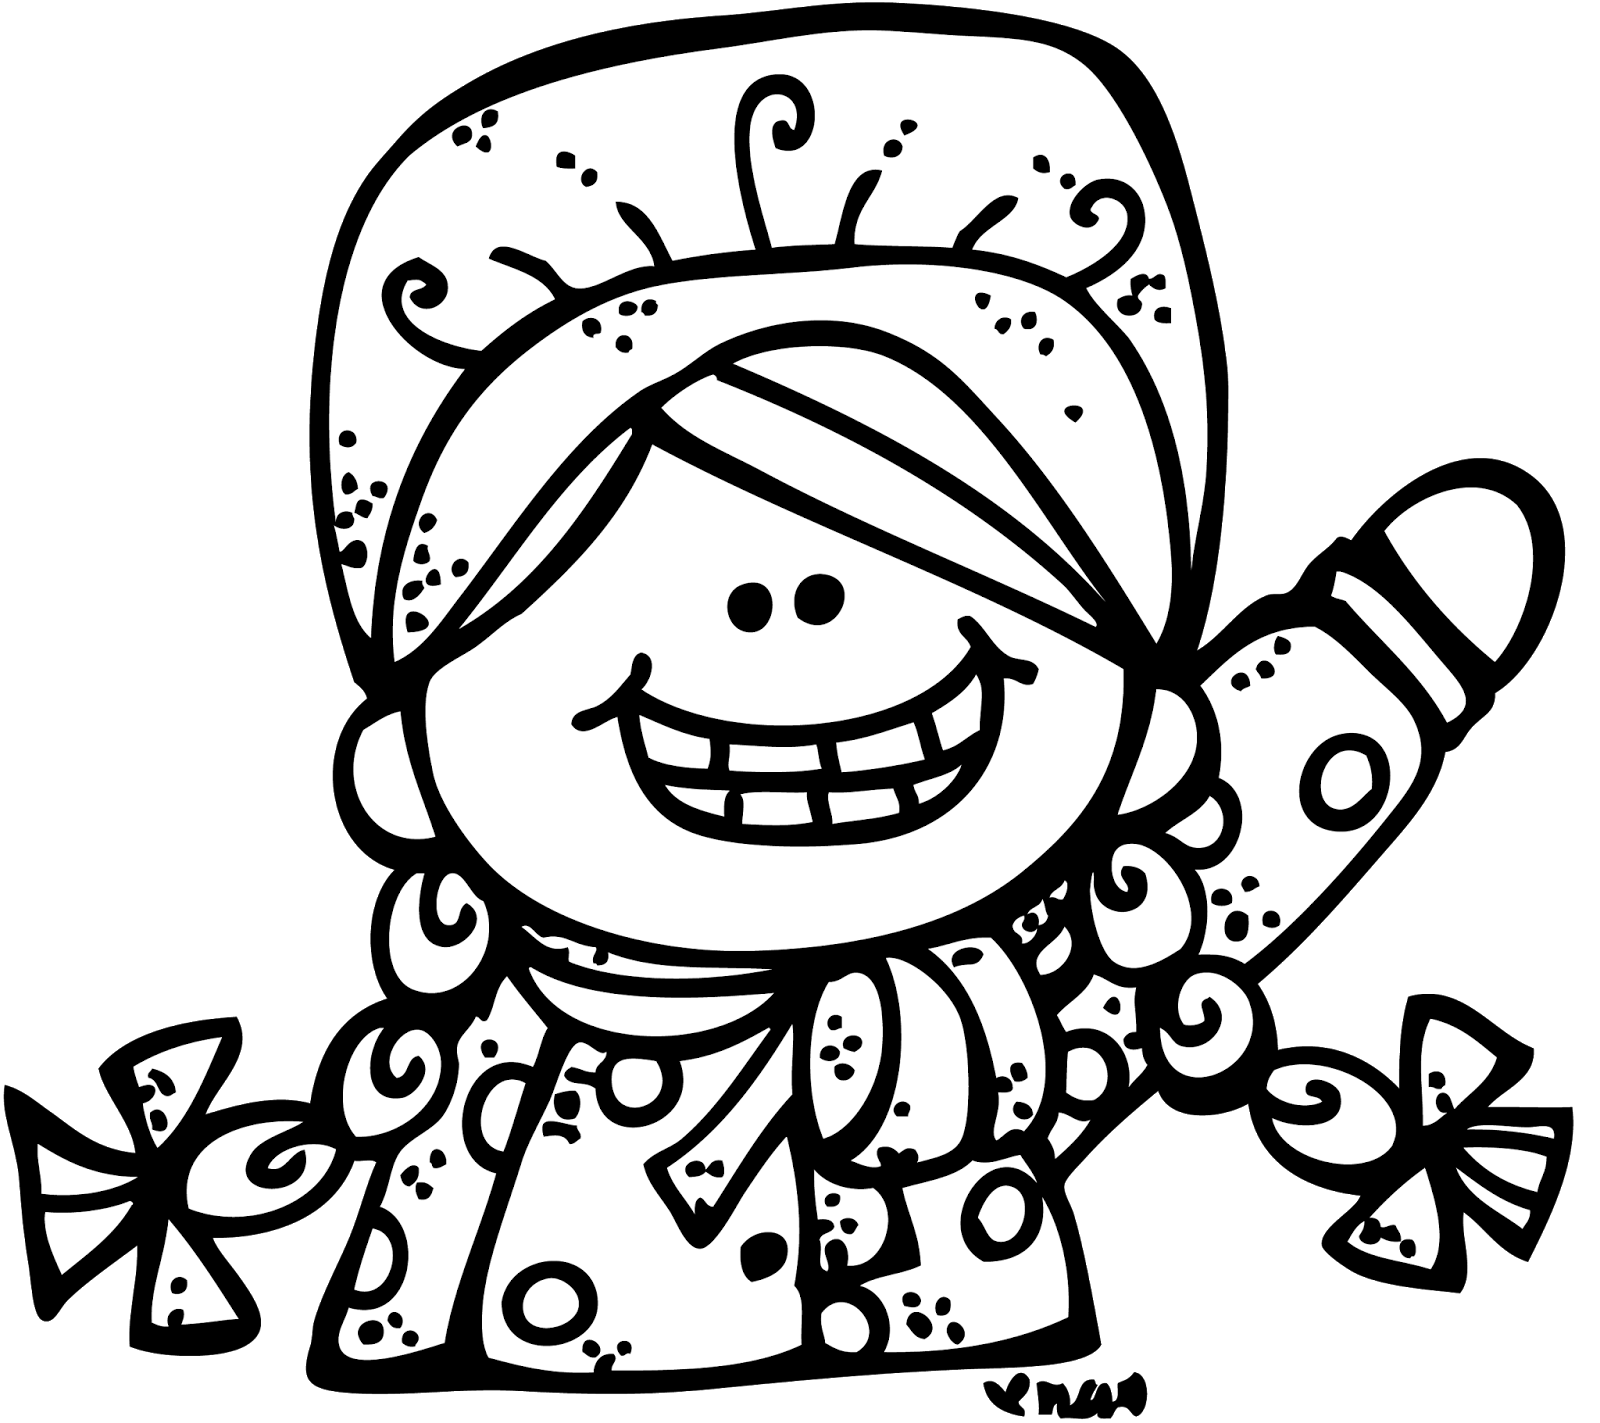 Pioneer clipart cute. Melonheadz illustrating day giveaway